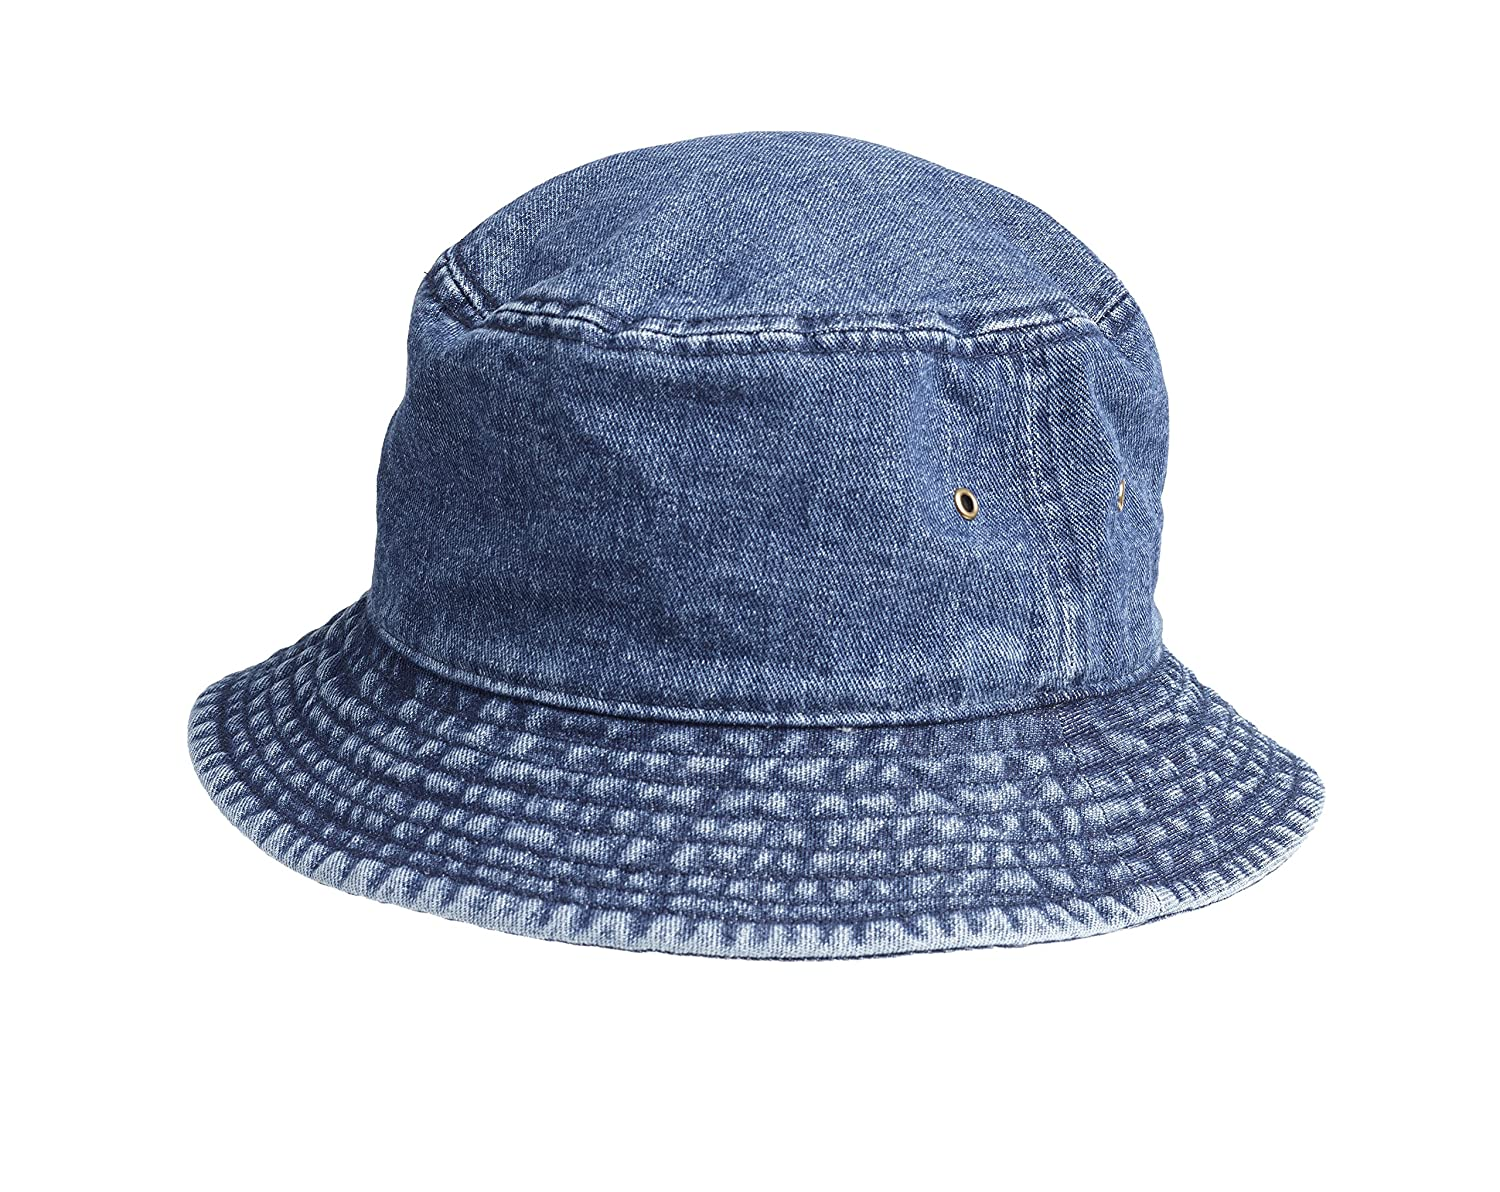 cb37dc27fe567 Revive Online Bucket Hats - 100% Cotton  Amazon.co.uk  Clothing